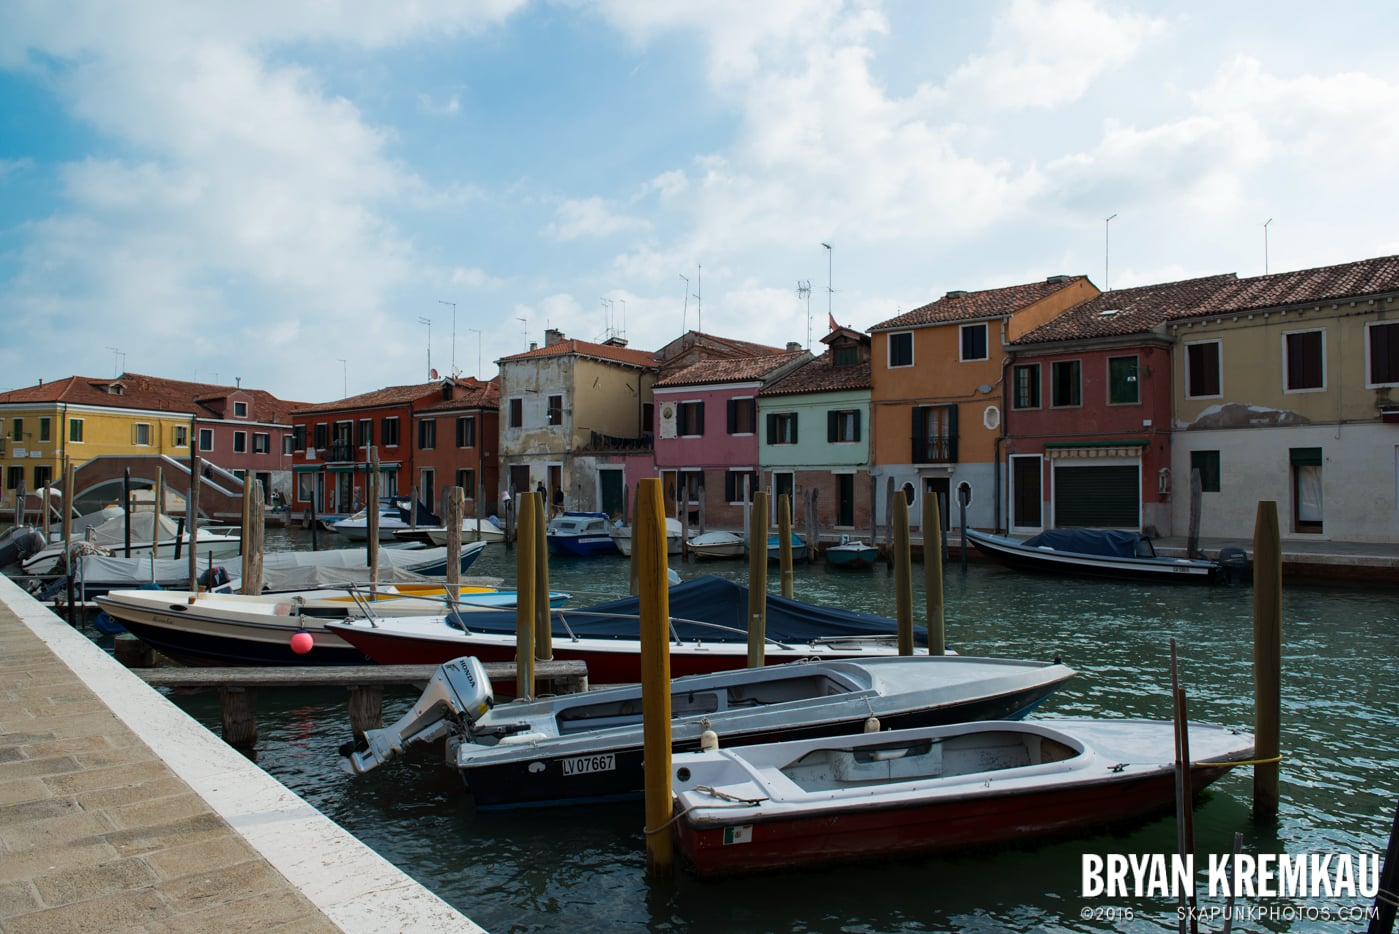 Italy Vacation - Day 6: Murano, Burano, Venice - 9.14.13 (86)